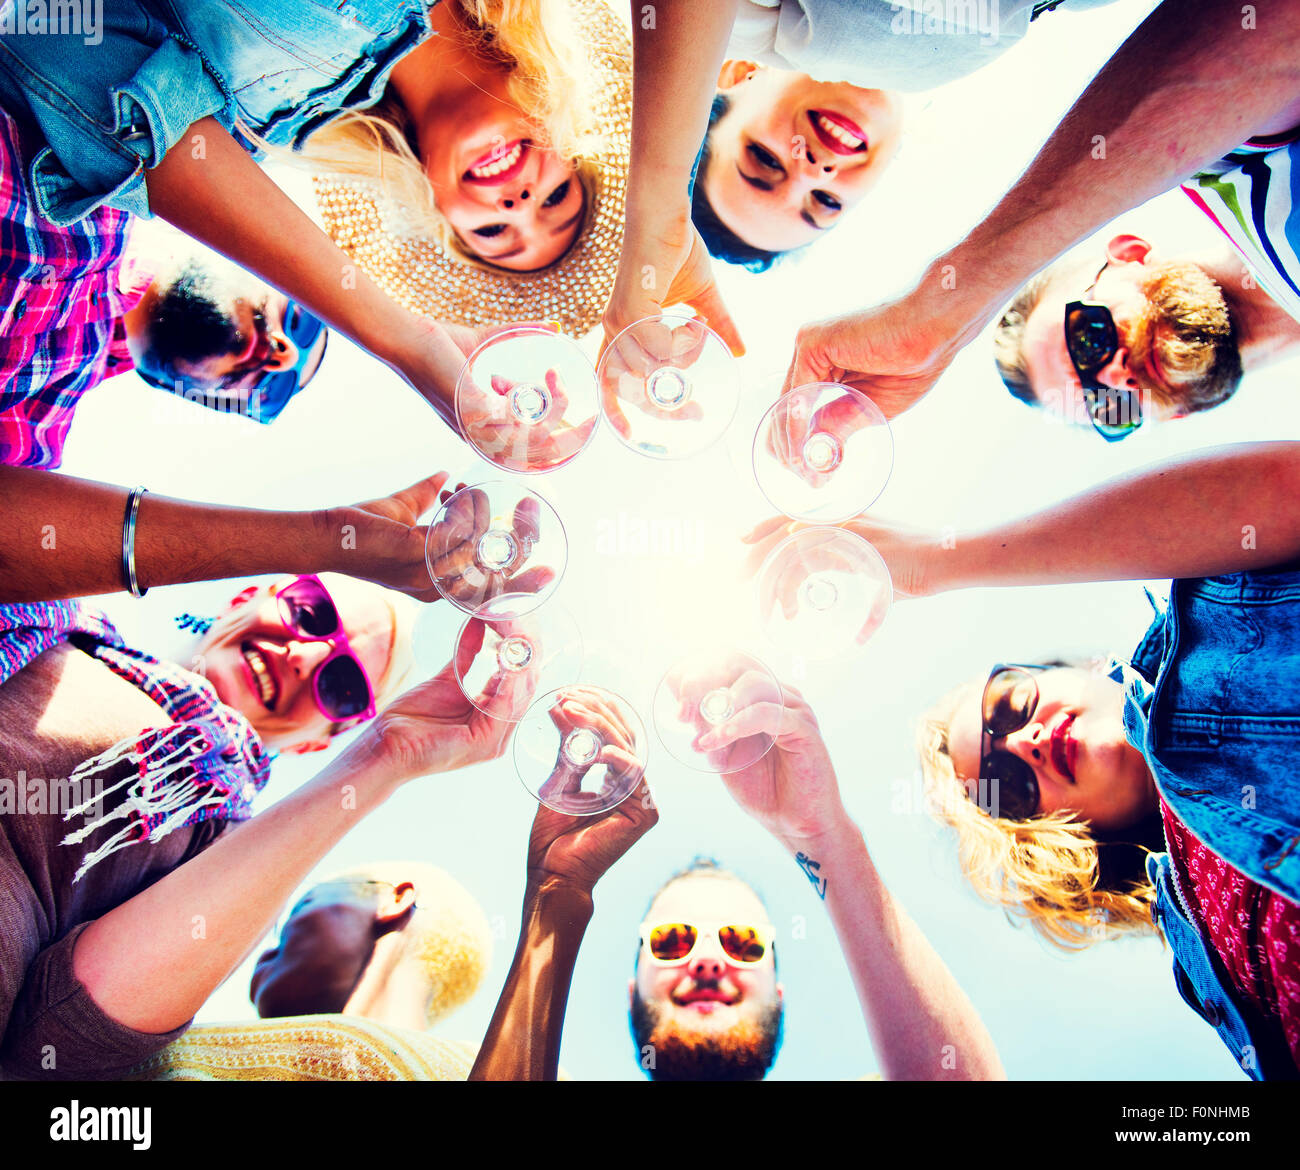 Celebration Champagne Looking Down Friends Concept - Stock Image